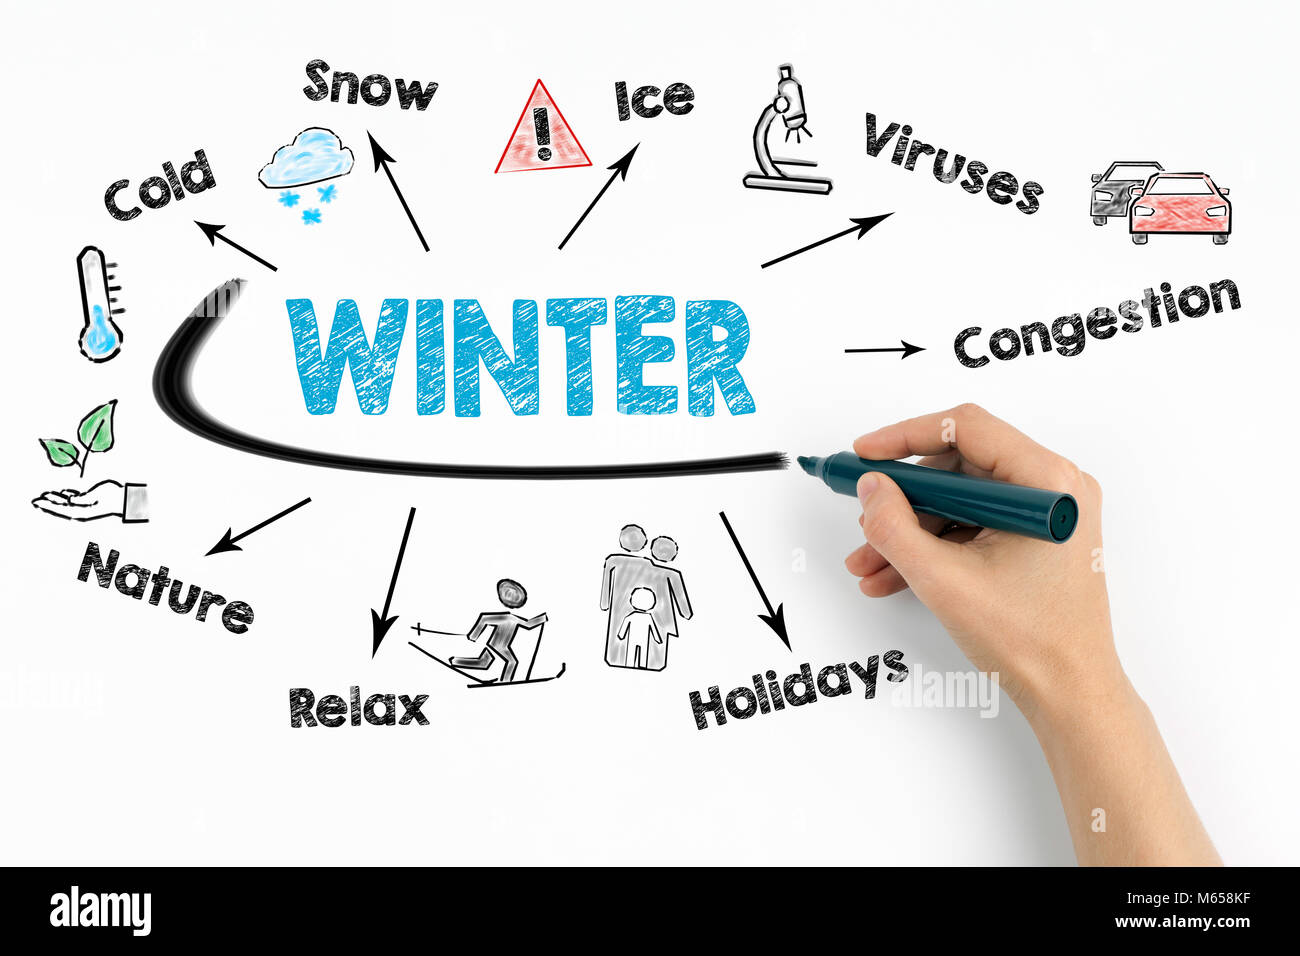 winter Concept. Chart with keywords and icons on white background - Stock Image